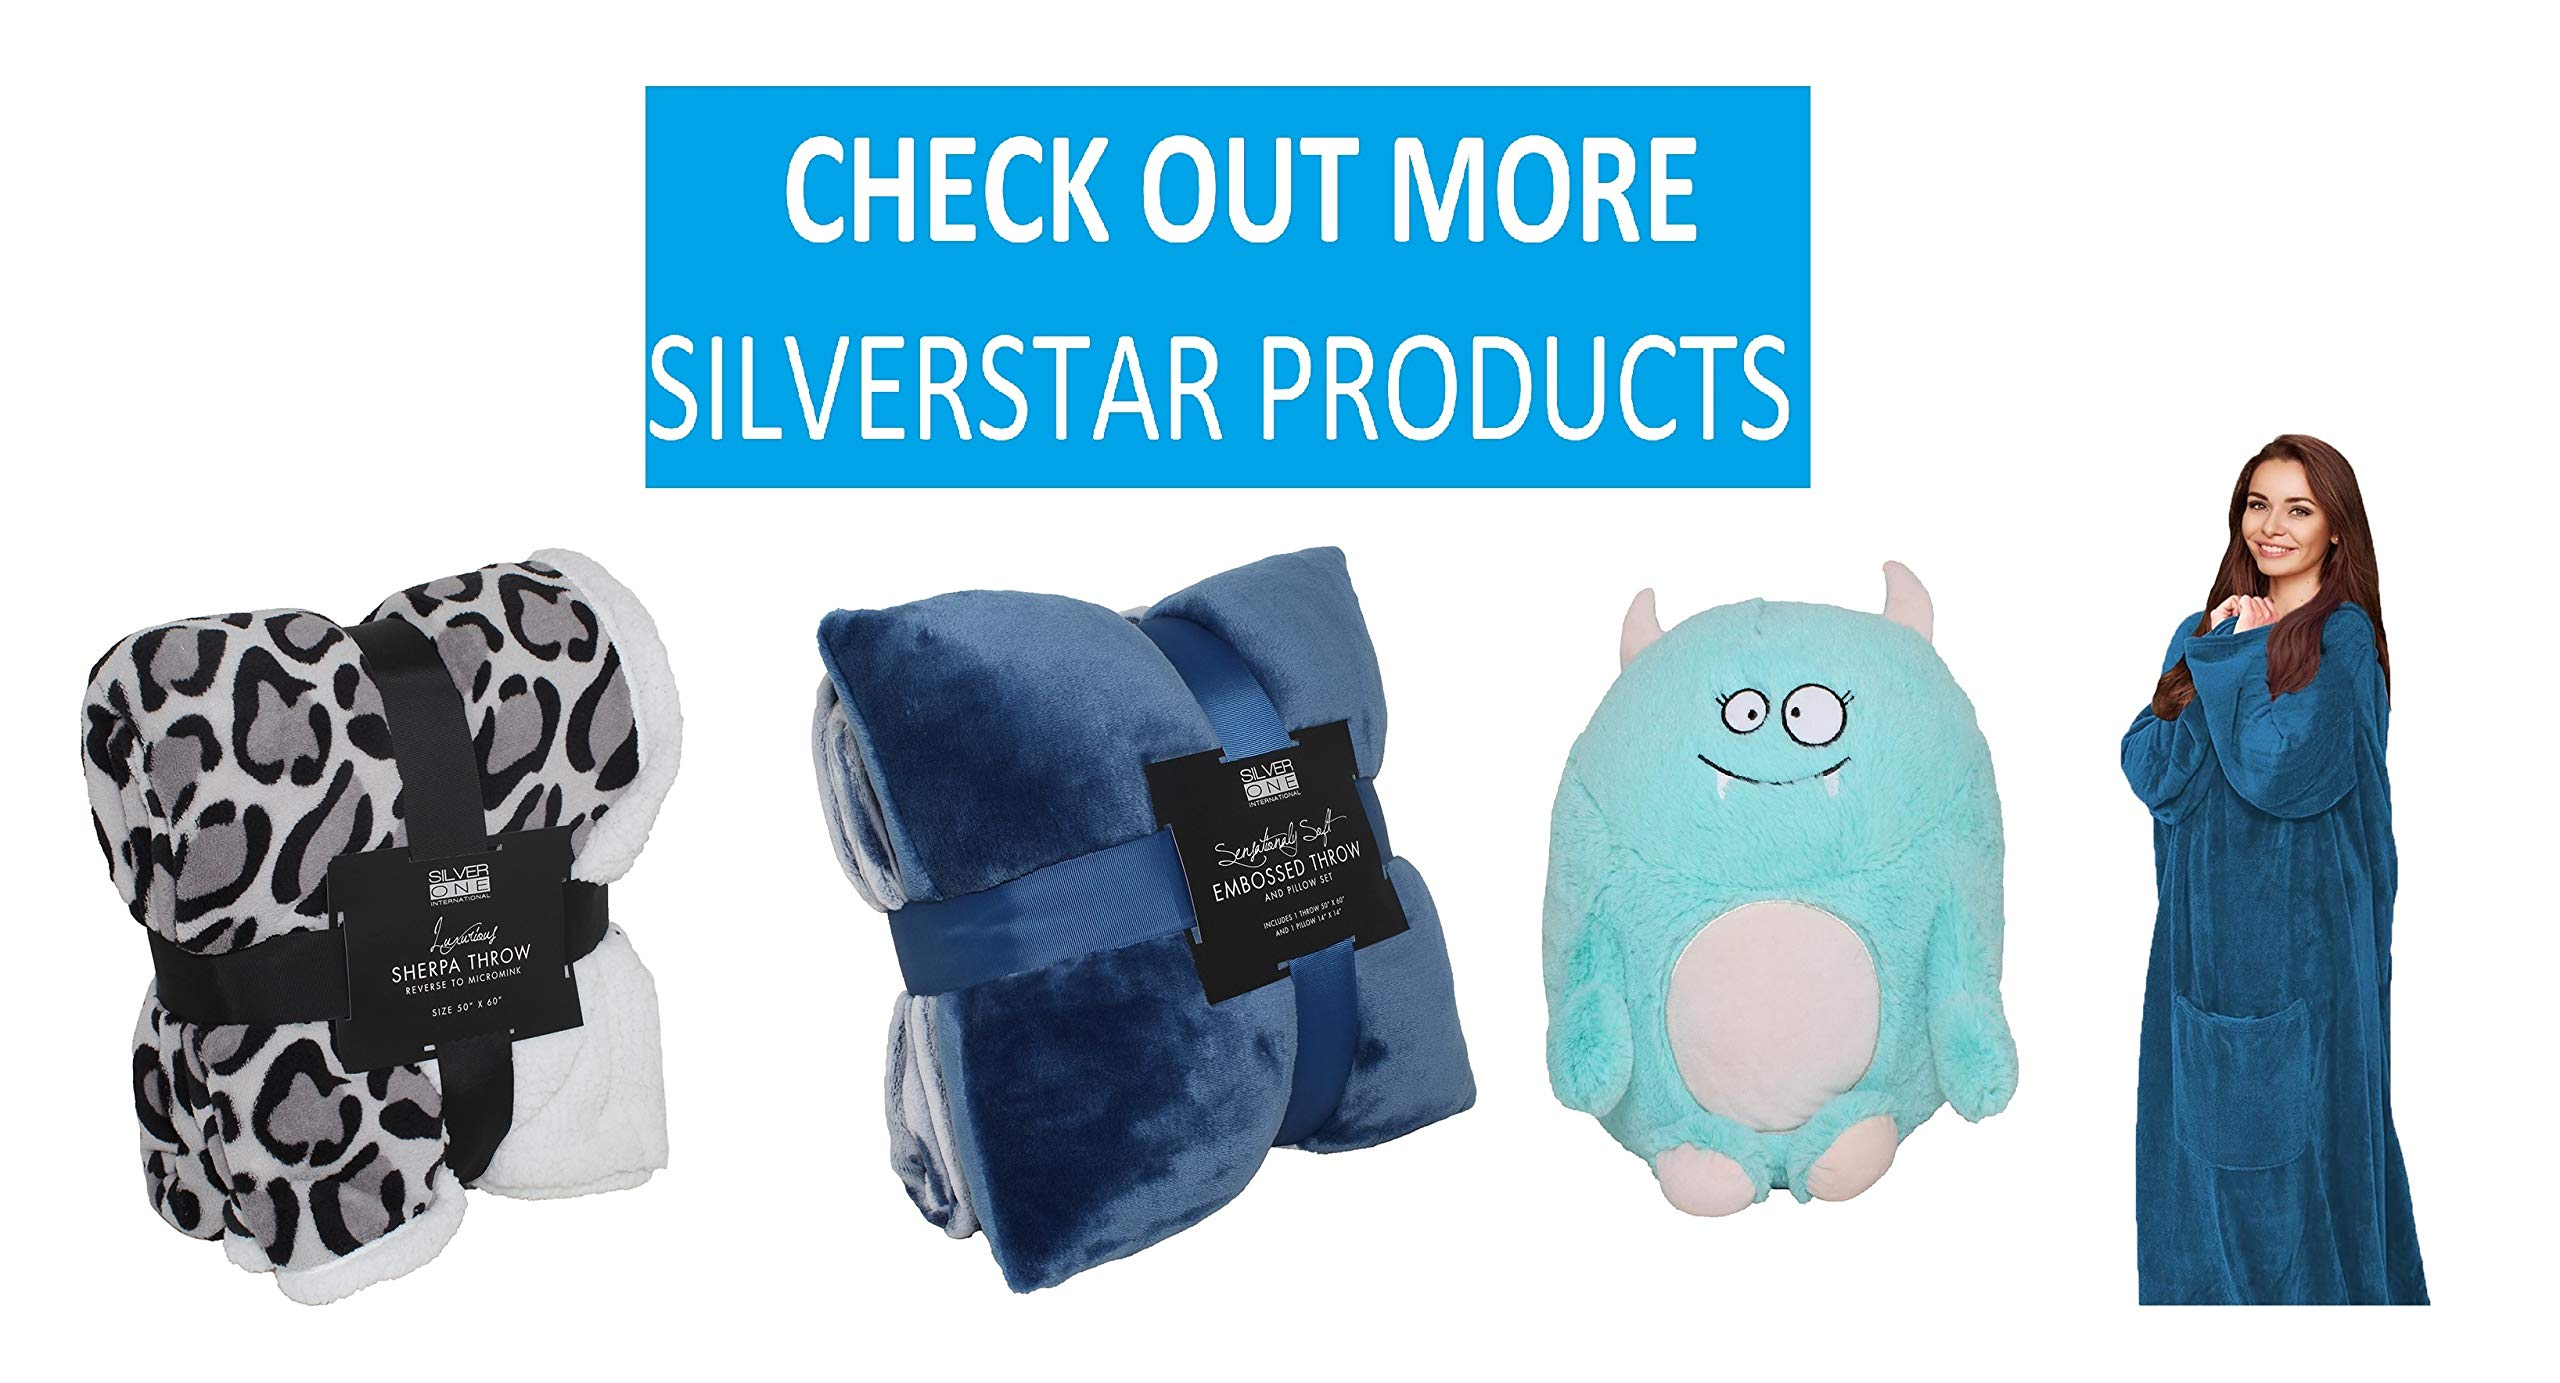 Silver One Sherpa Plush Stuffed Animal and Throw Blanket 2 Peice Gift Set for Kids/Children | 50'' x 60'' Soft Plush Throw | Get Well Gifts Tan Lion by SILVER ONE (Image #5)